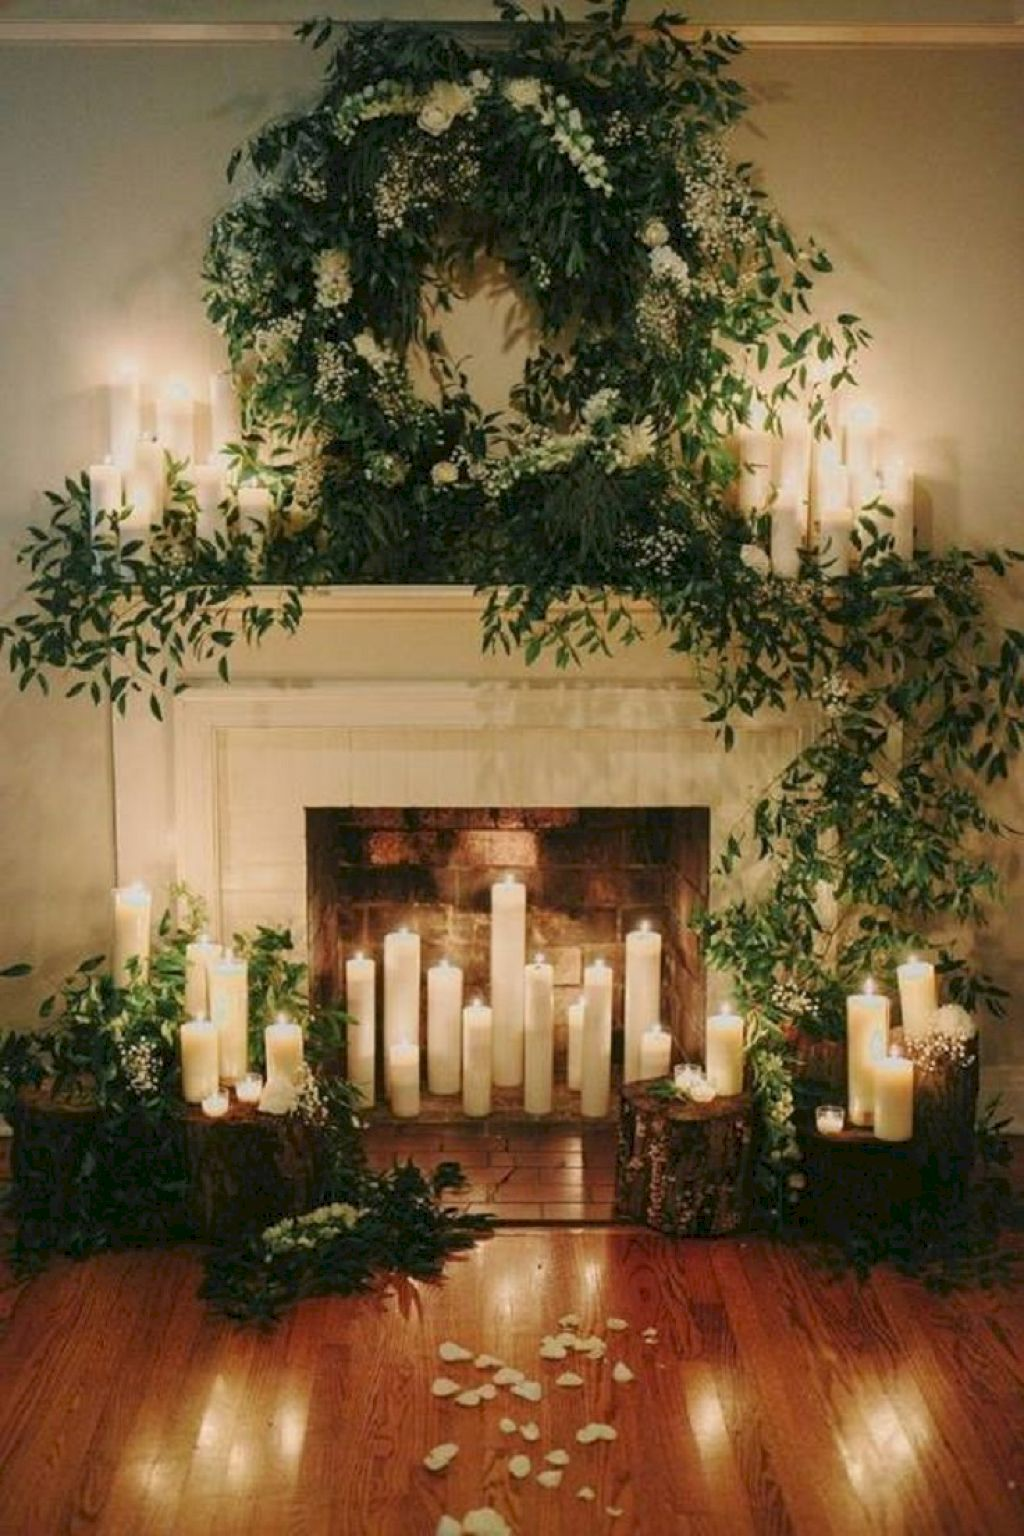 Adorable beautiful christmas fireplace decor ideas source link https decornamentation also interior  furniture rh pinterest